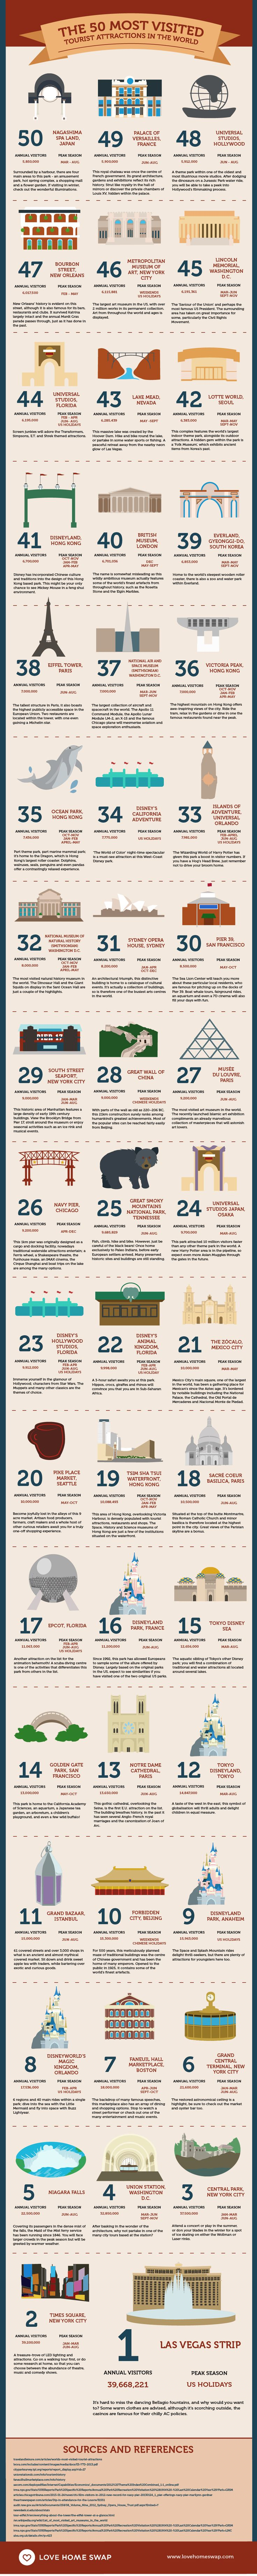 The World's 50 Most Visited Tourist Attractions  - how some of these made it on the I do not know!